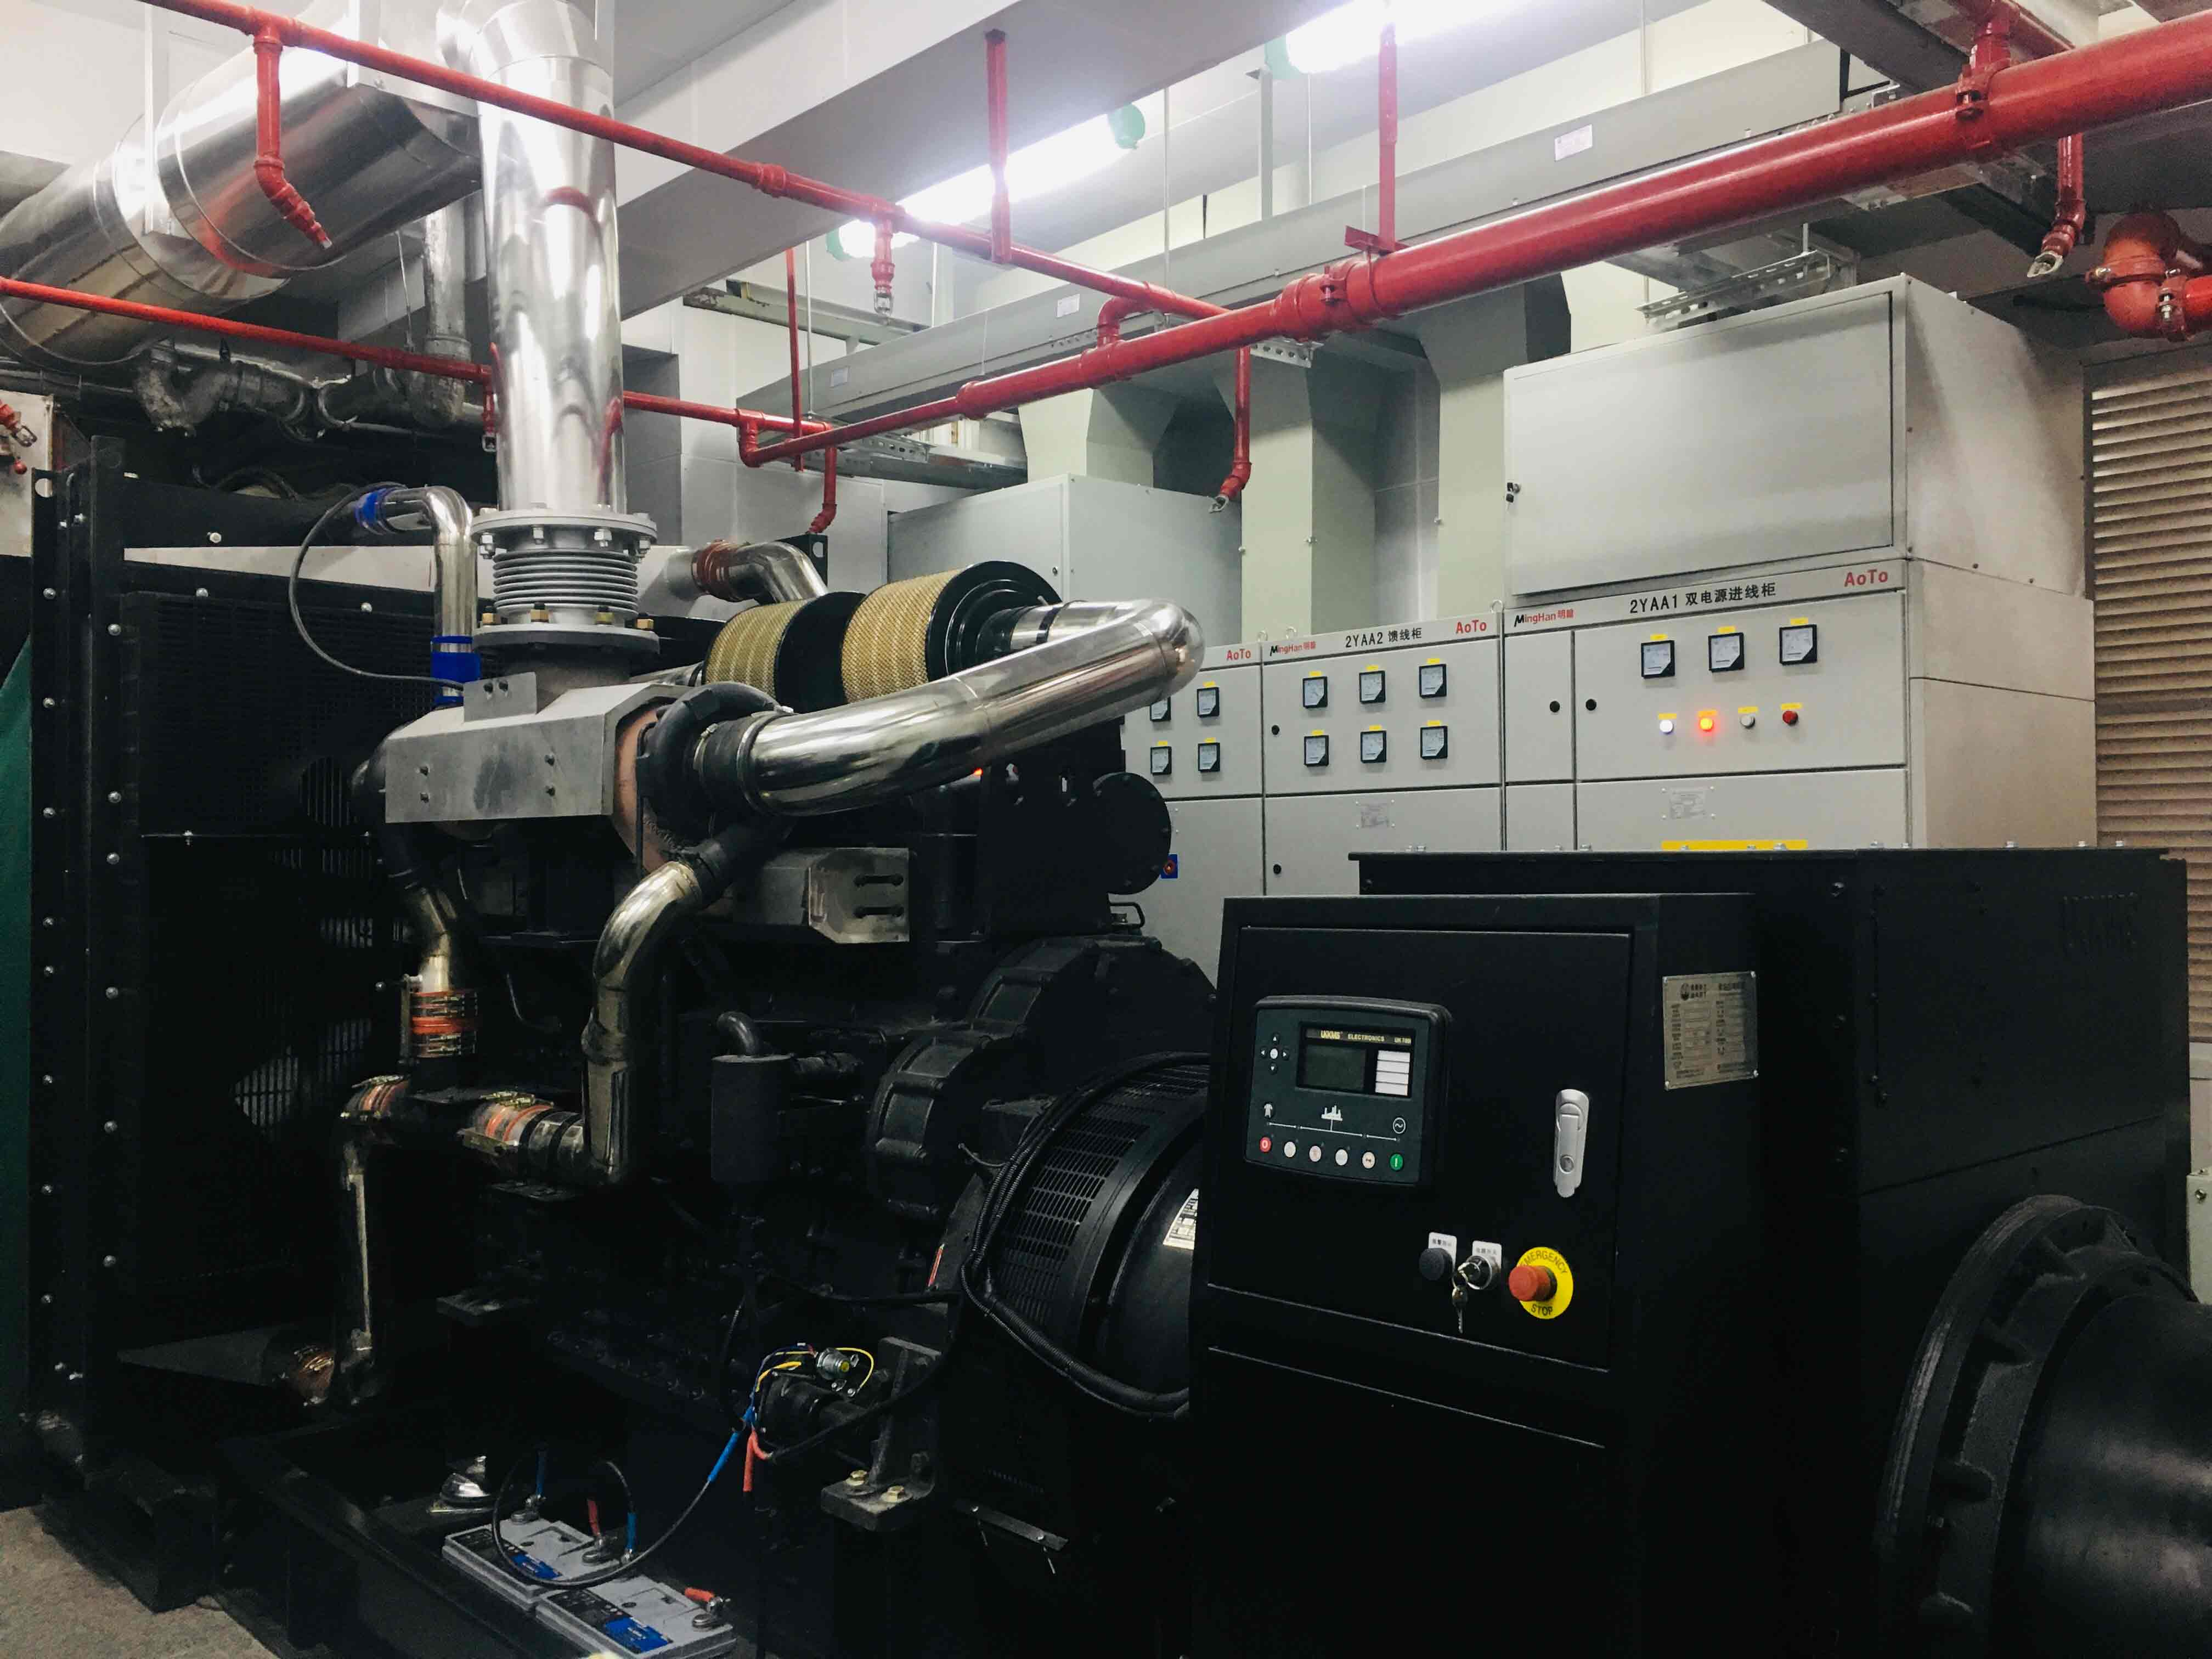 BA POWER signed two sets of 800Kw UKKMS diesel gensets with State Taxation Bureau of Xiamen City